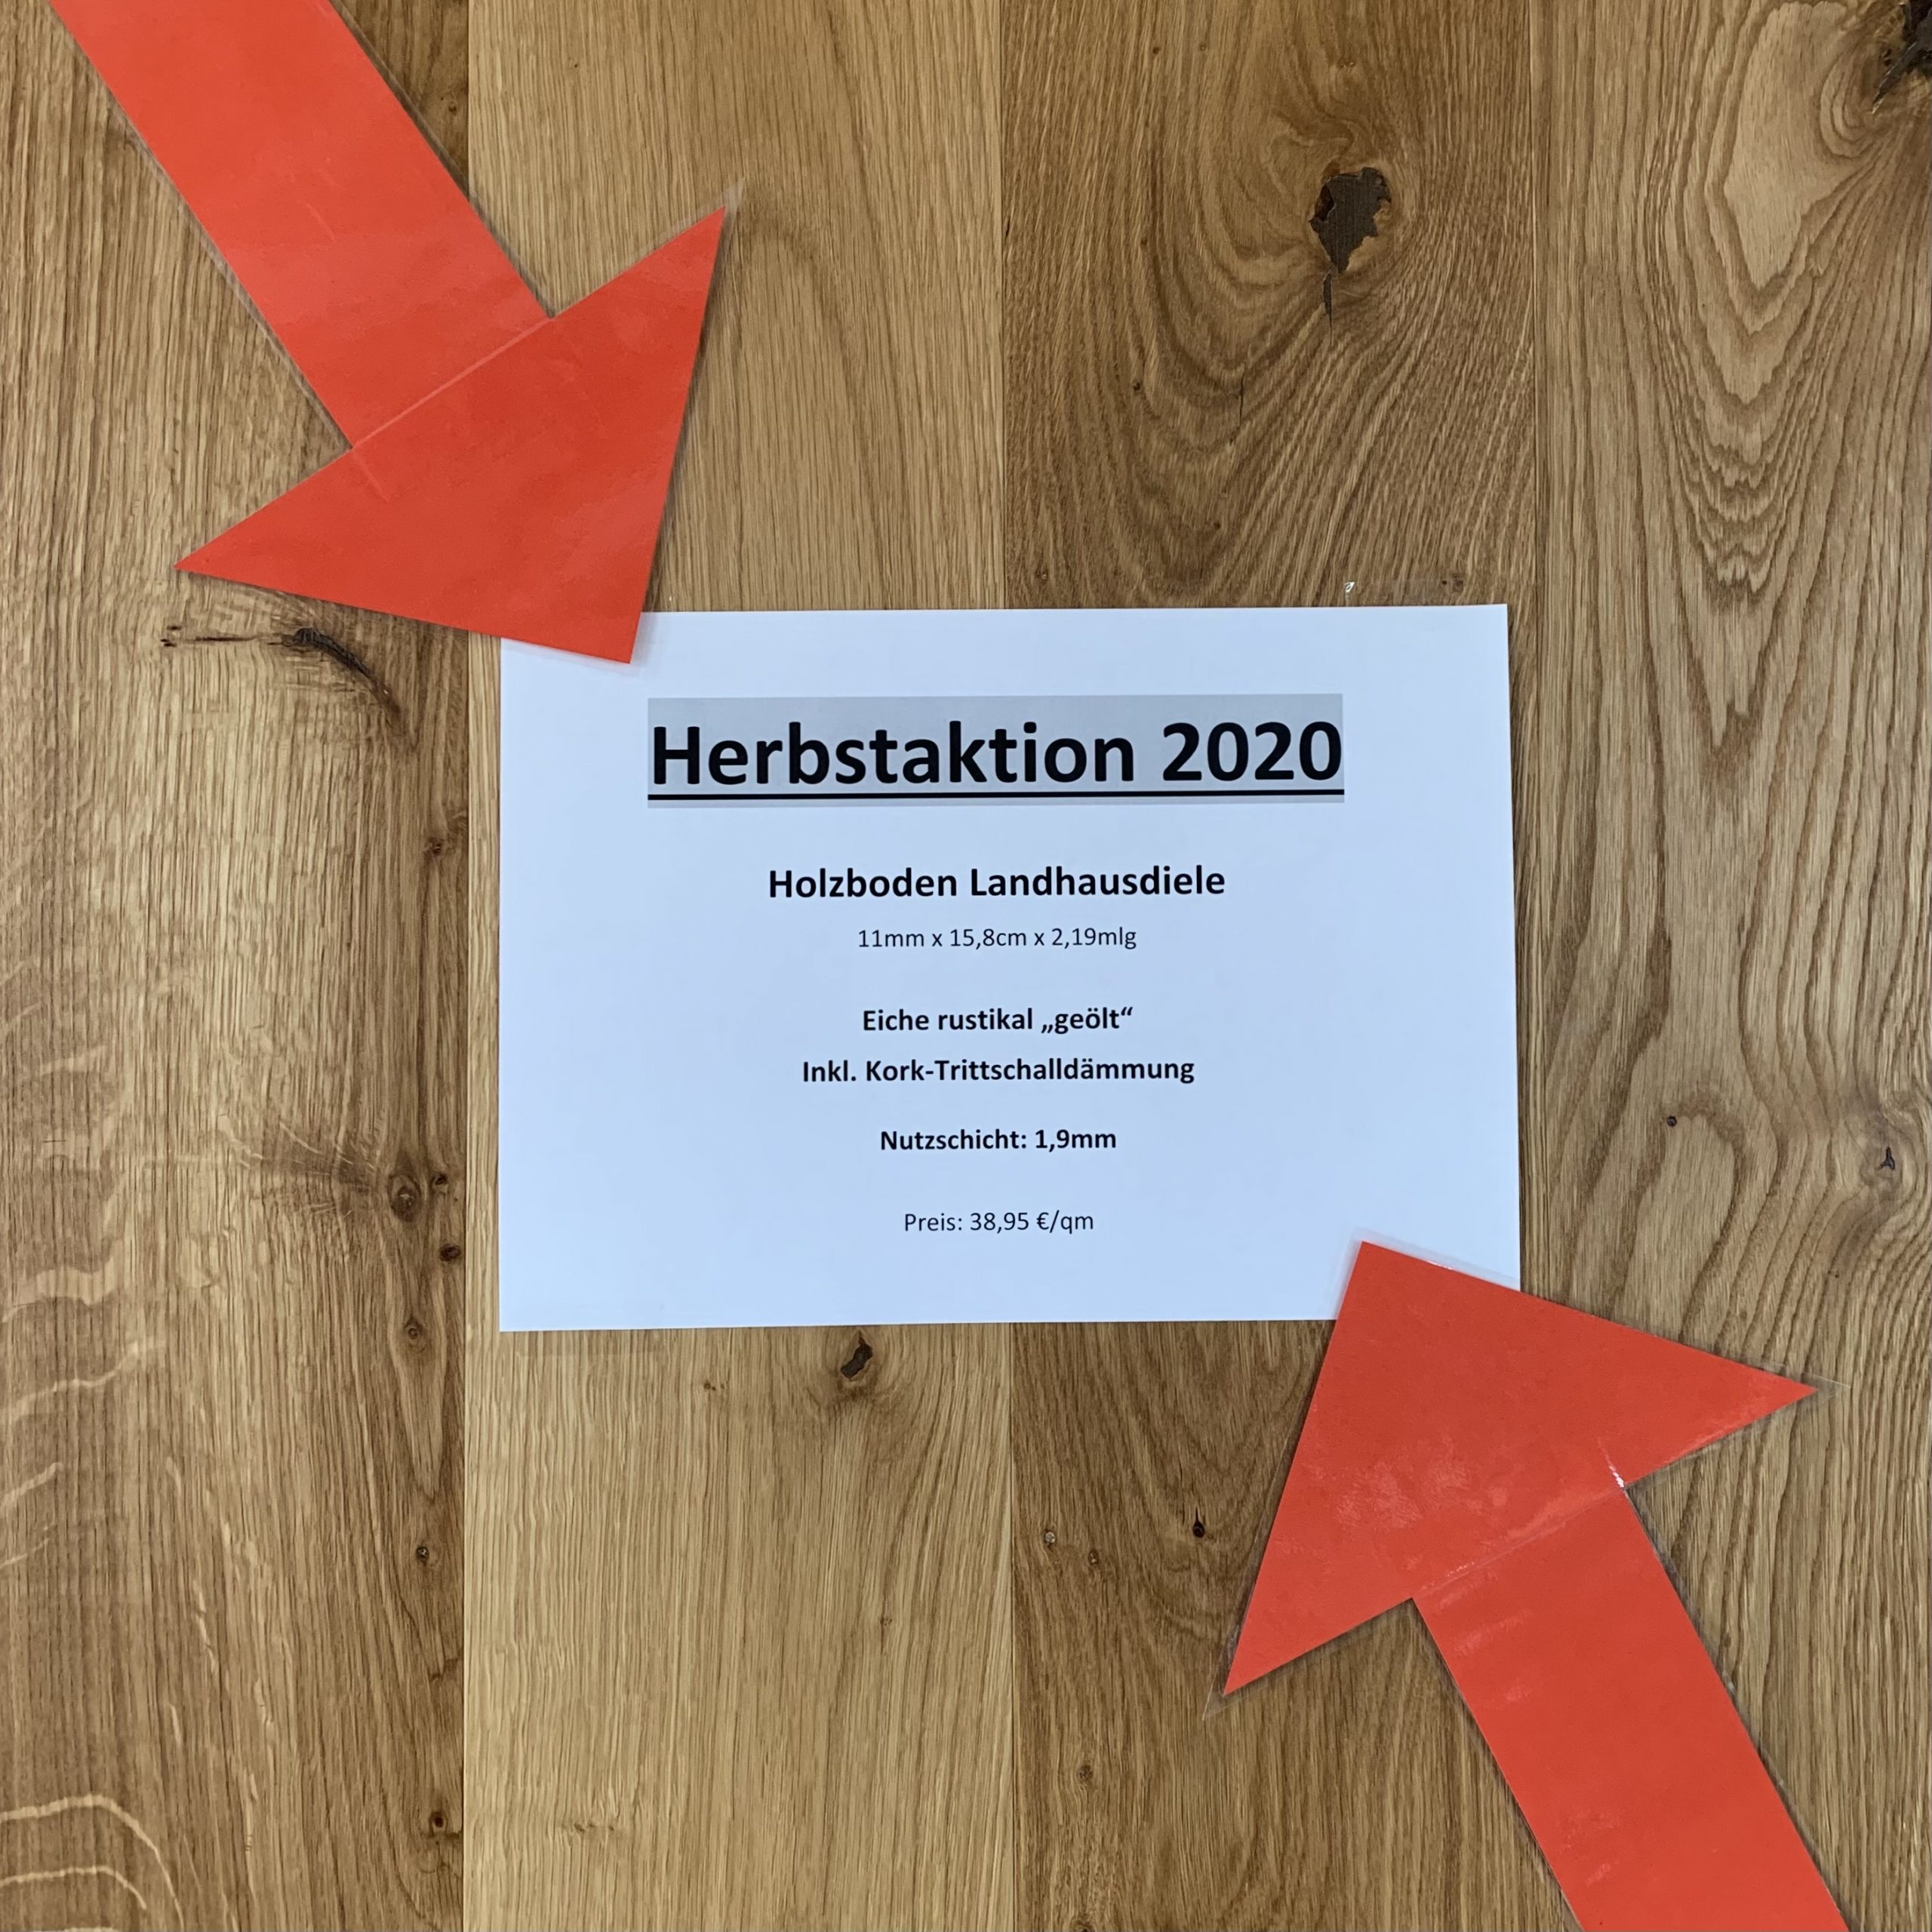 Herbstaktion 2020